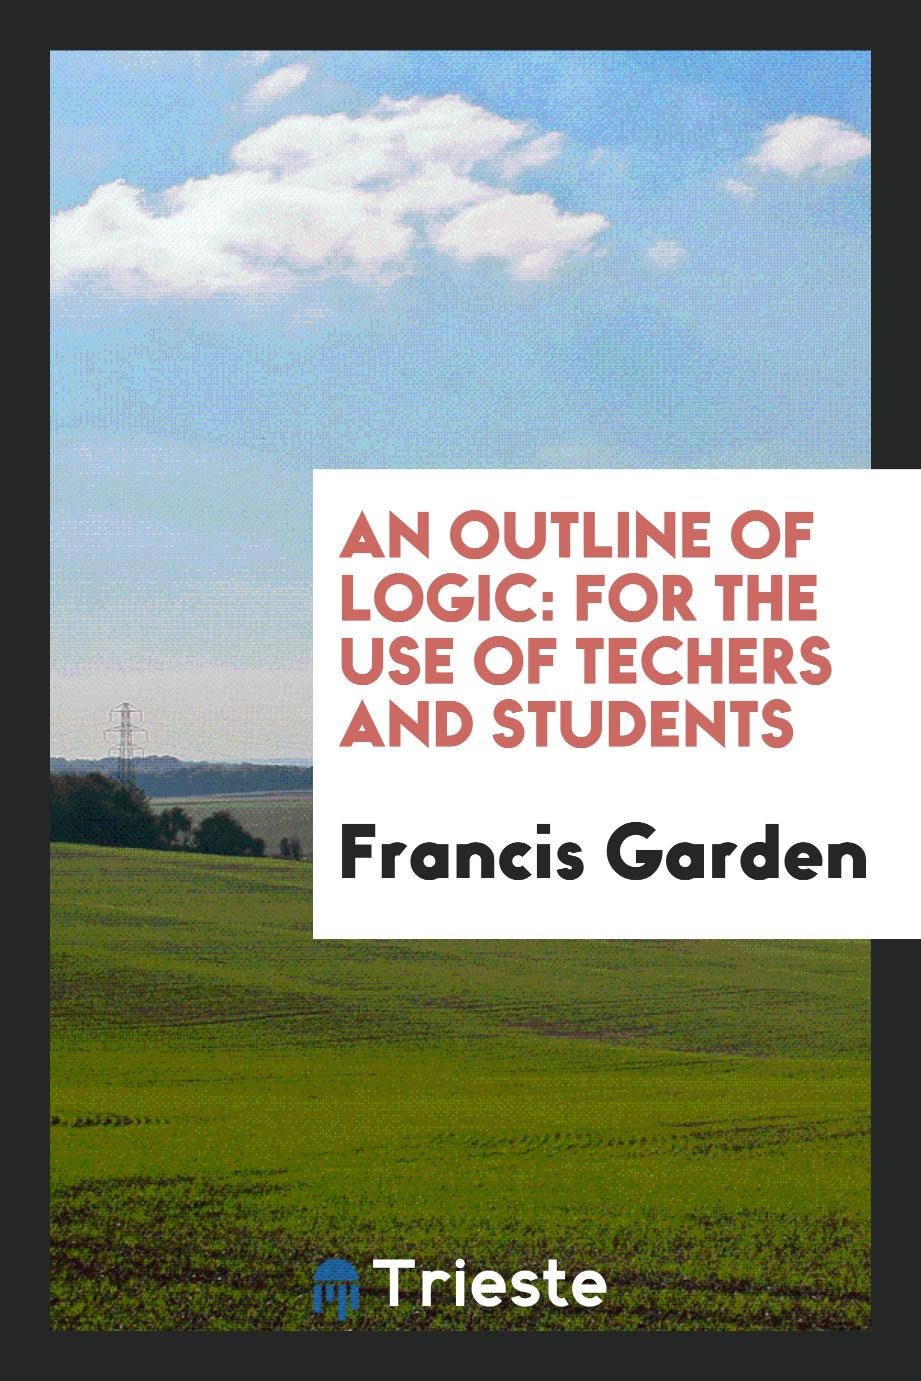 An Outline of Logic: For the Use of Techers and Students